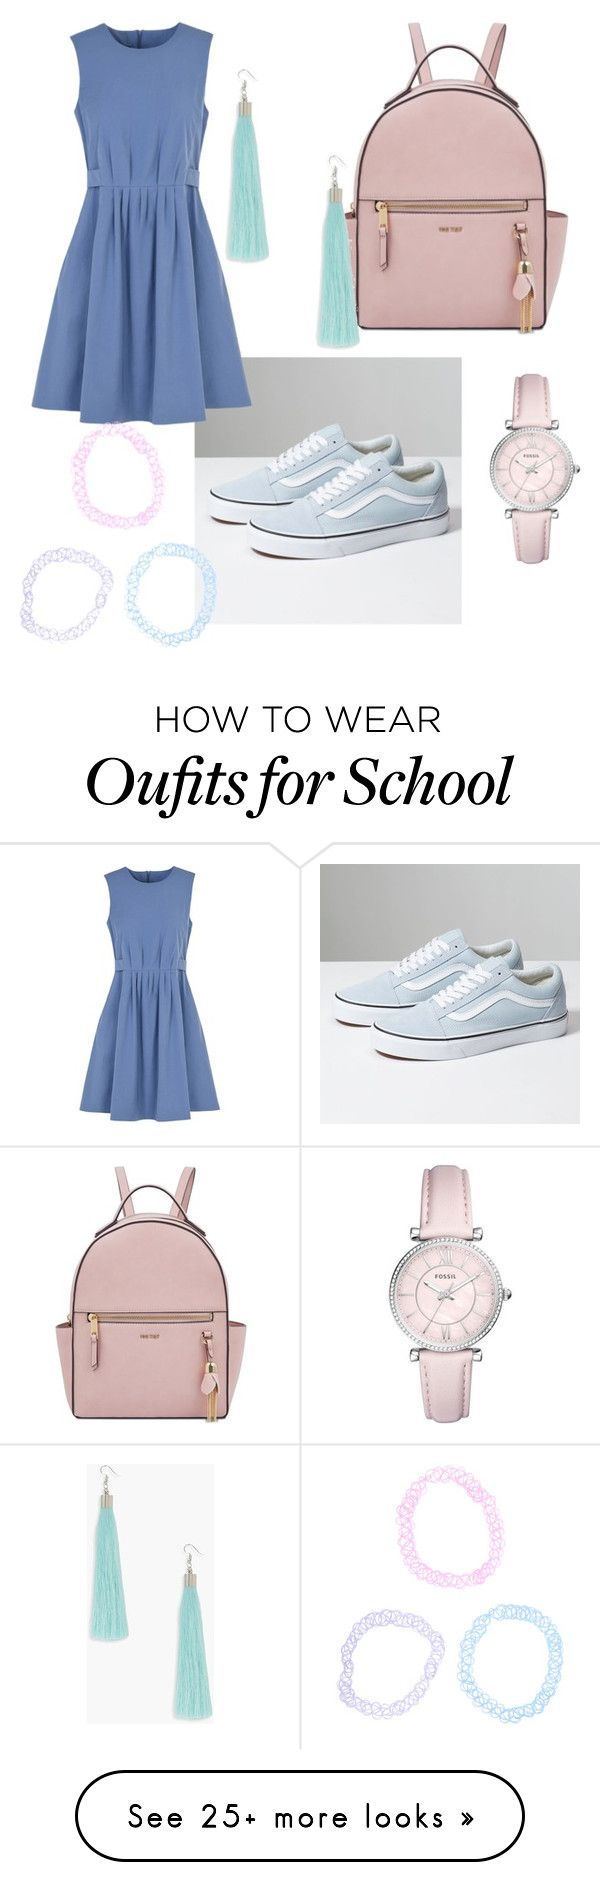 """""""Pastel school girl"""" by zebratx88 on Polyvore featuring Nine West, FOSSIL, Vans, Emporio Armani, Boohoo, Hot Topic and pastelsweaters"""